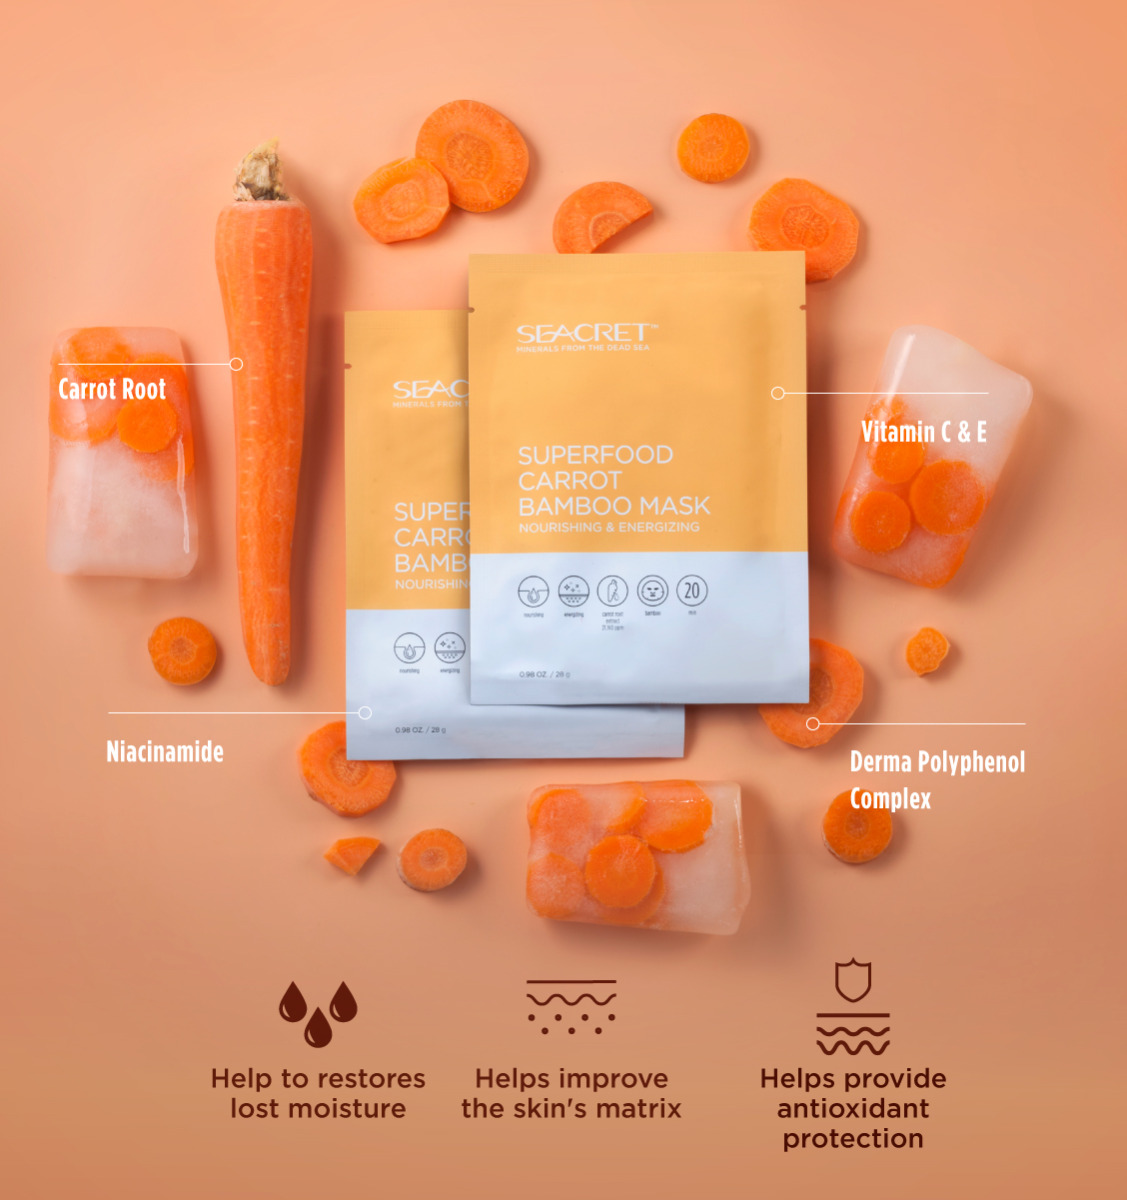 SuperFood Carrot Bamboo Mask